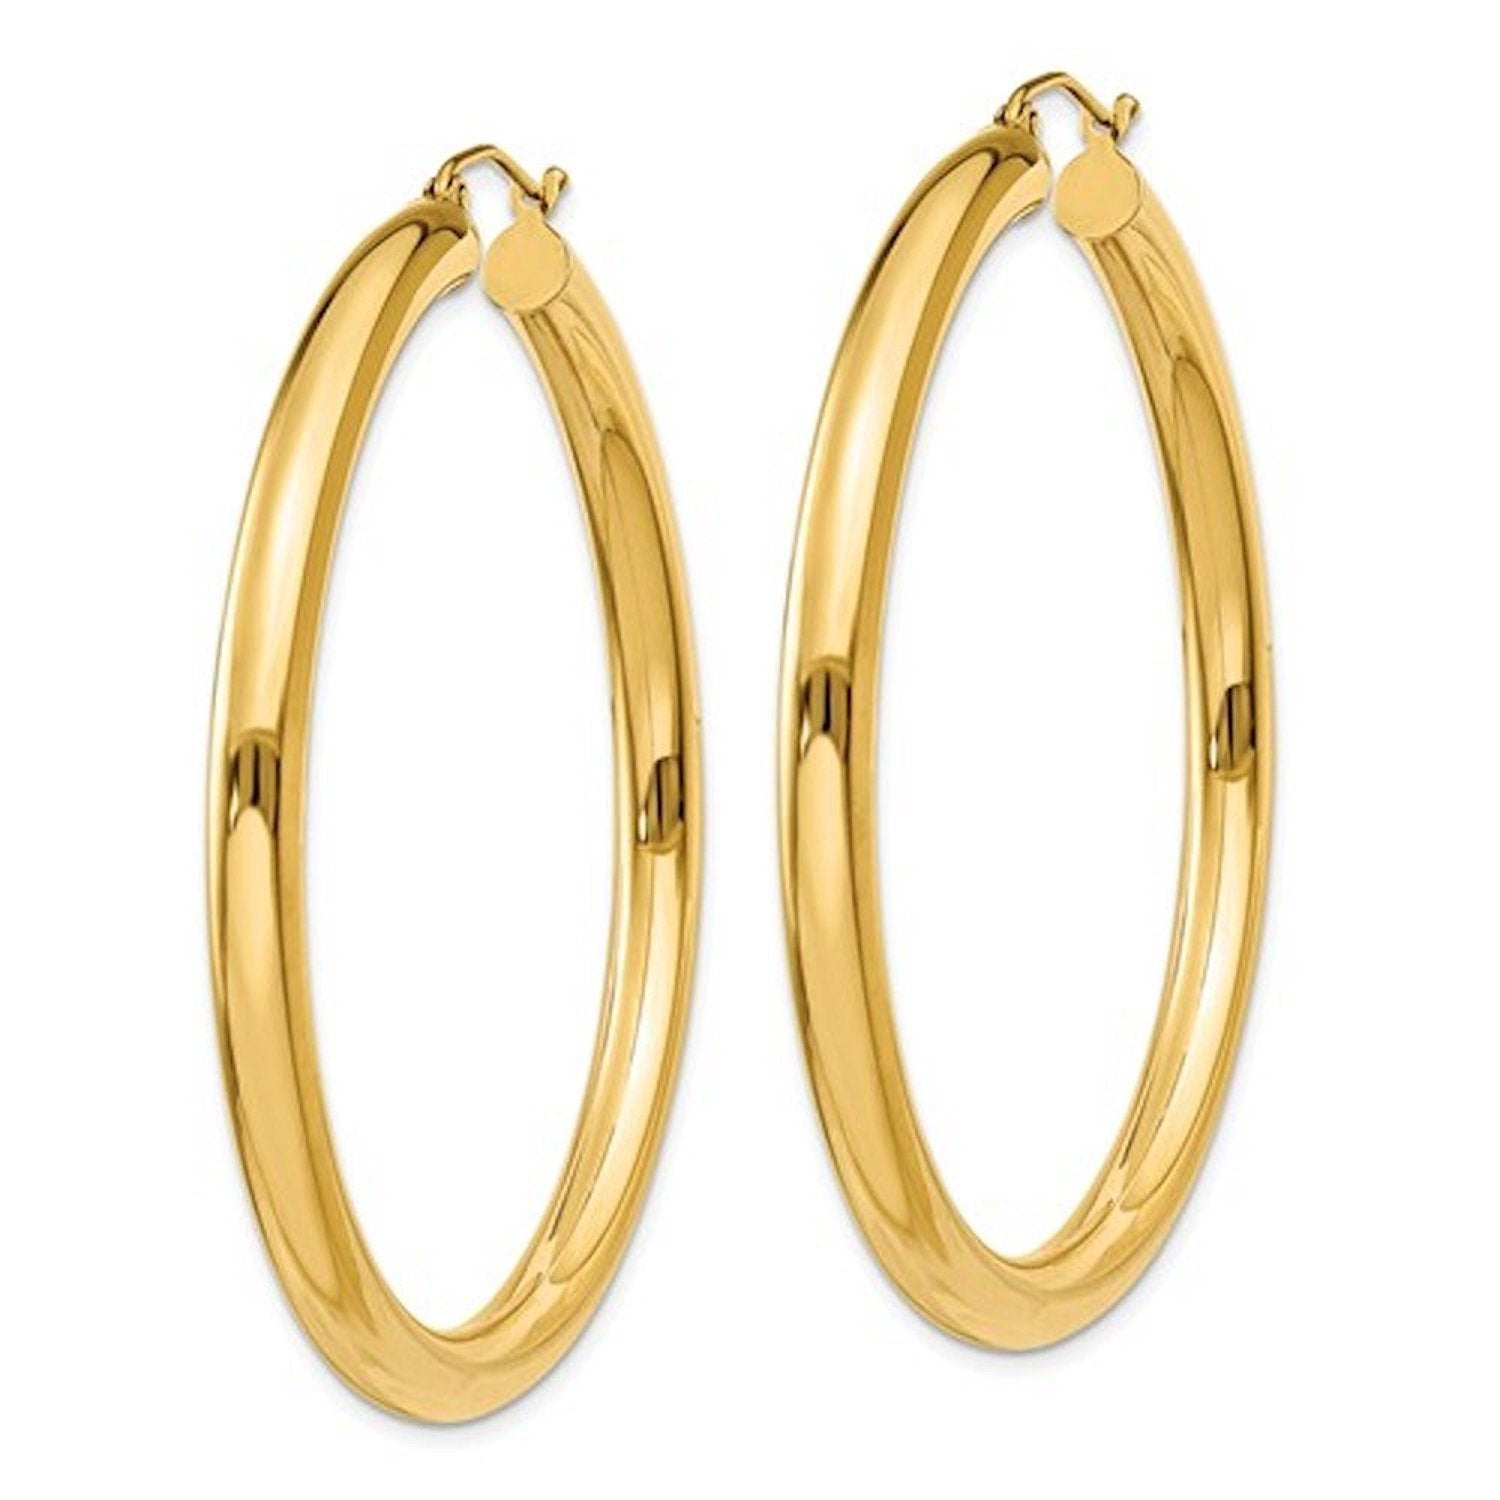 14K Yellow Gold Large Classic Round Hoop Earrings 50mmx4mm